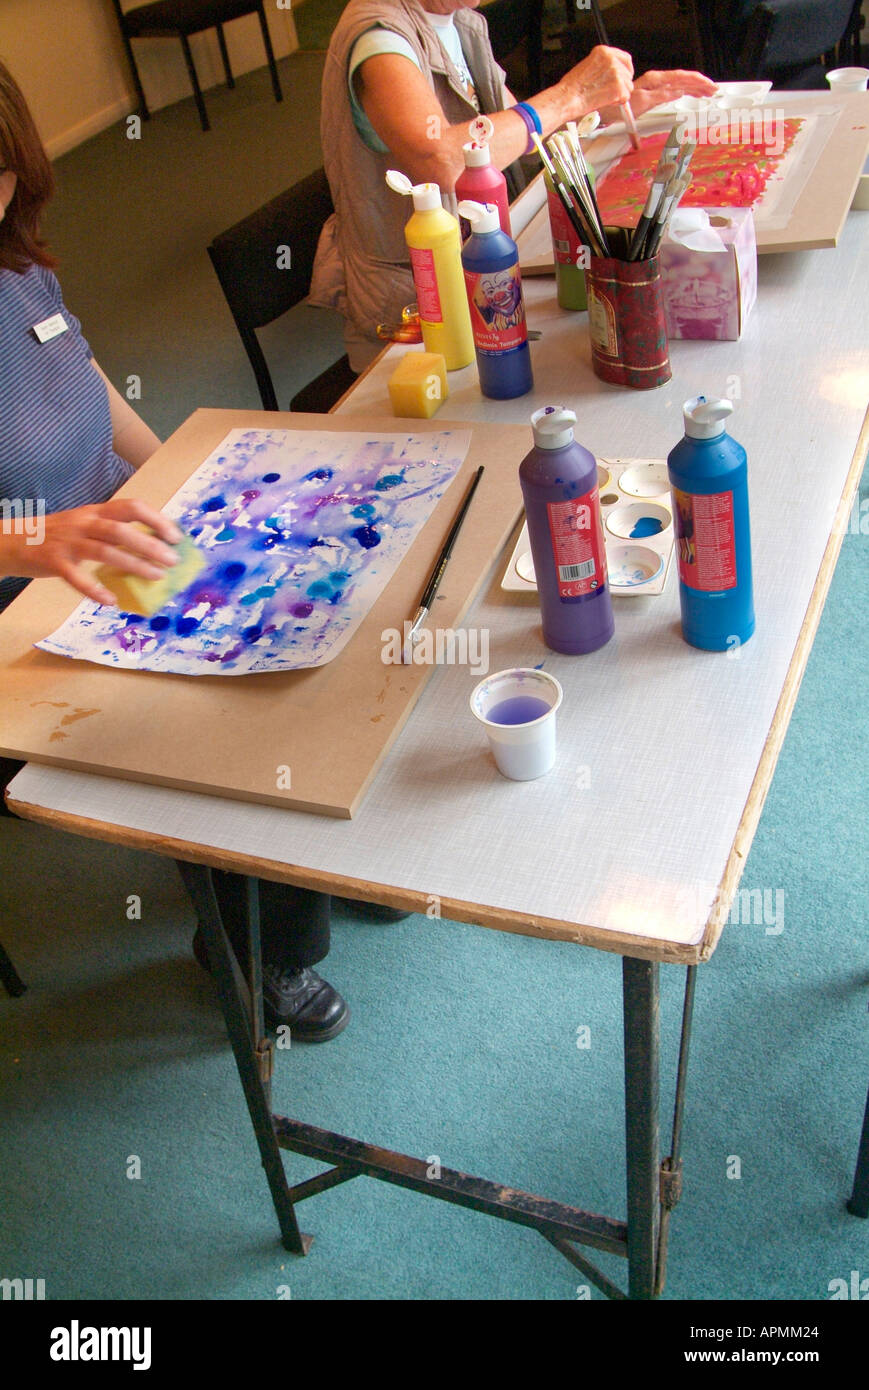 Painting Therapy Workshop Water Colour Color Table Top Drawing Board